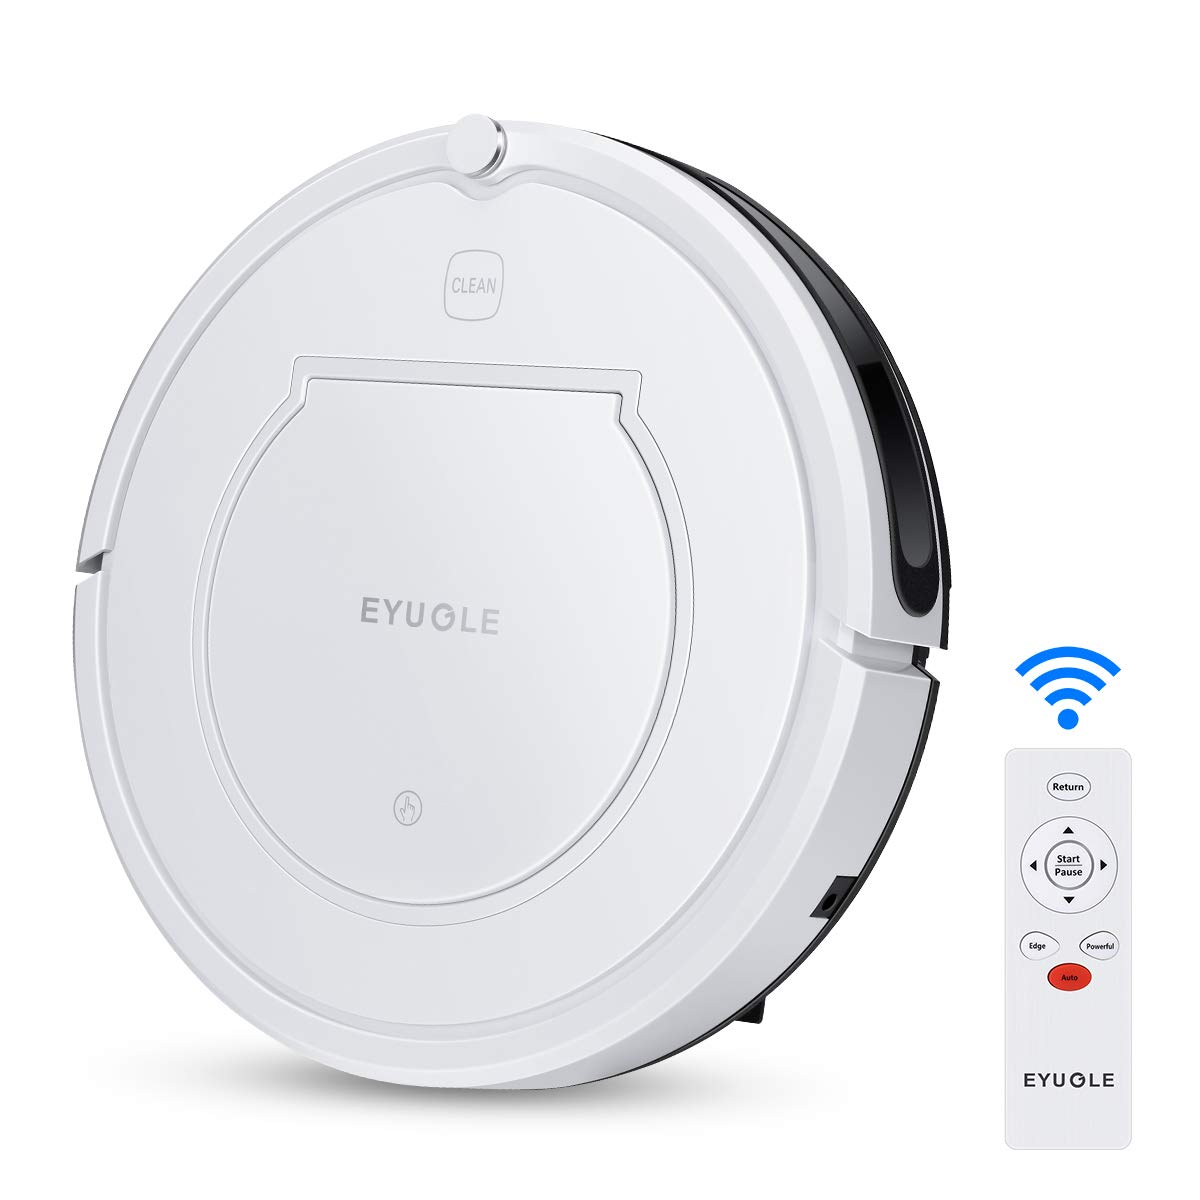 EYUGLE Robot Vacuum Self-Charging Cleaner and Mop w/Dock Station, Power Suction, Slim Design, Remote Control, Anti-Drop, HEPA Filter Good for Pet Hair, Thin Carpets and Hard Floors(KK320A1N)